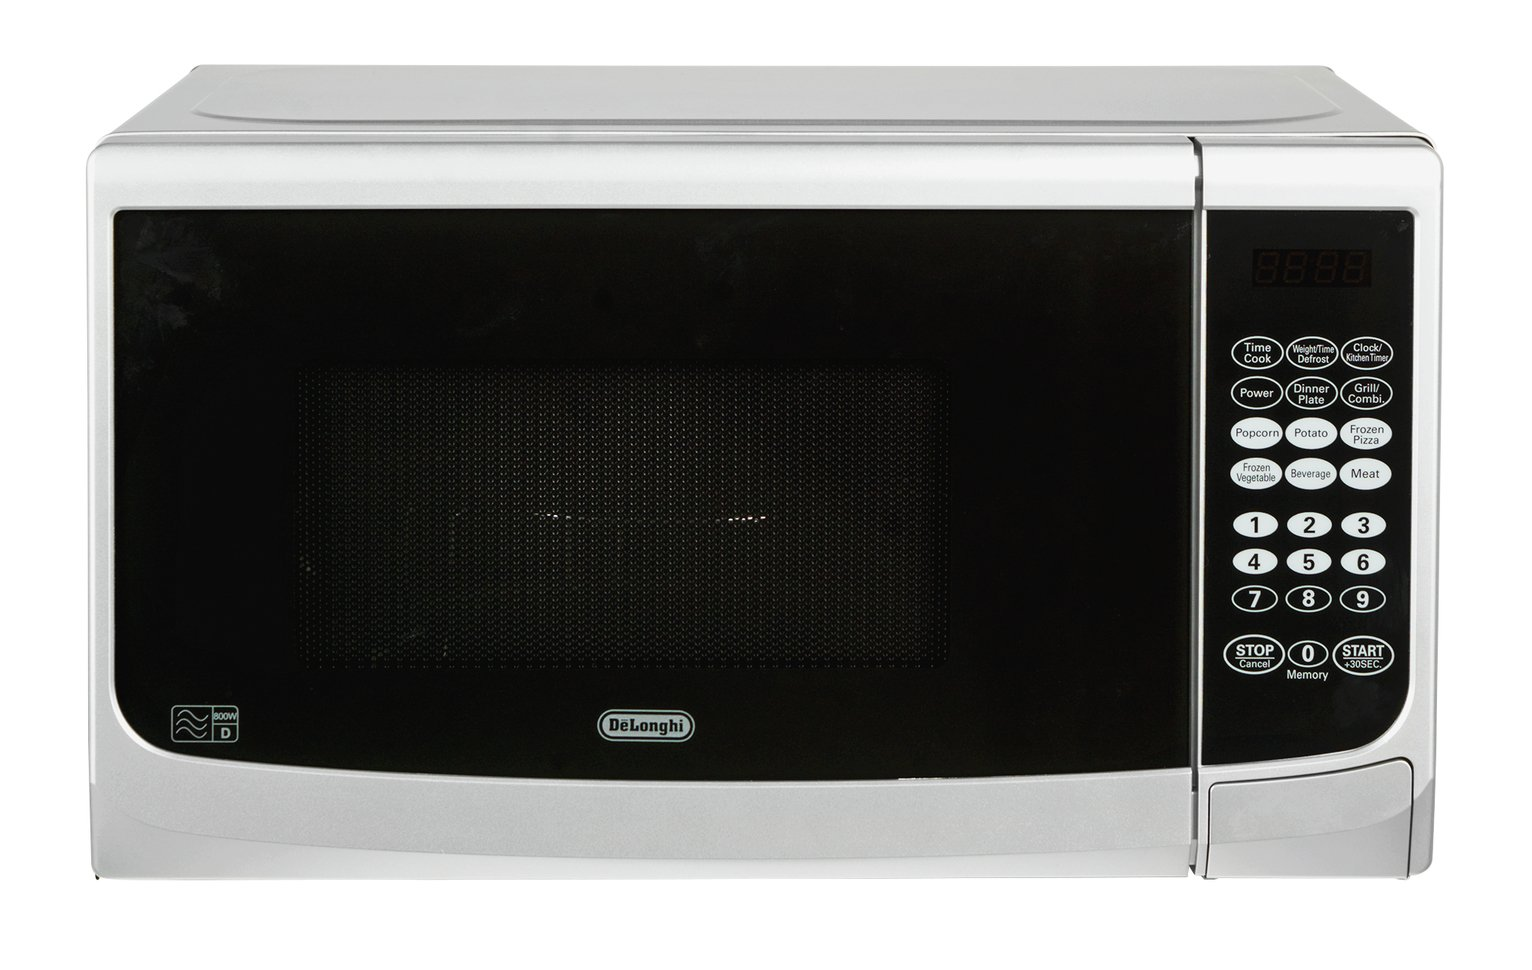 DeLonghi - Microwave With Grill - E98CWW 20L 800W -Touch - Silver